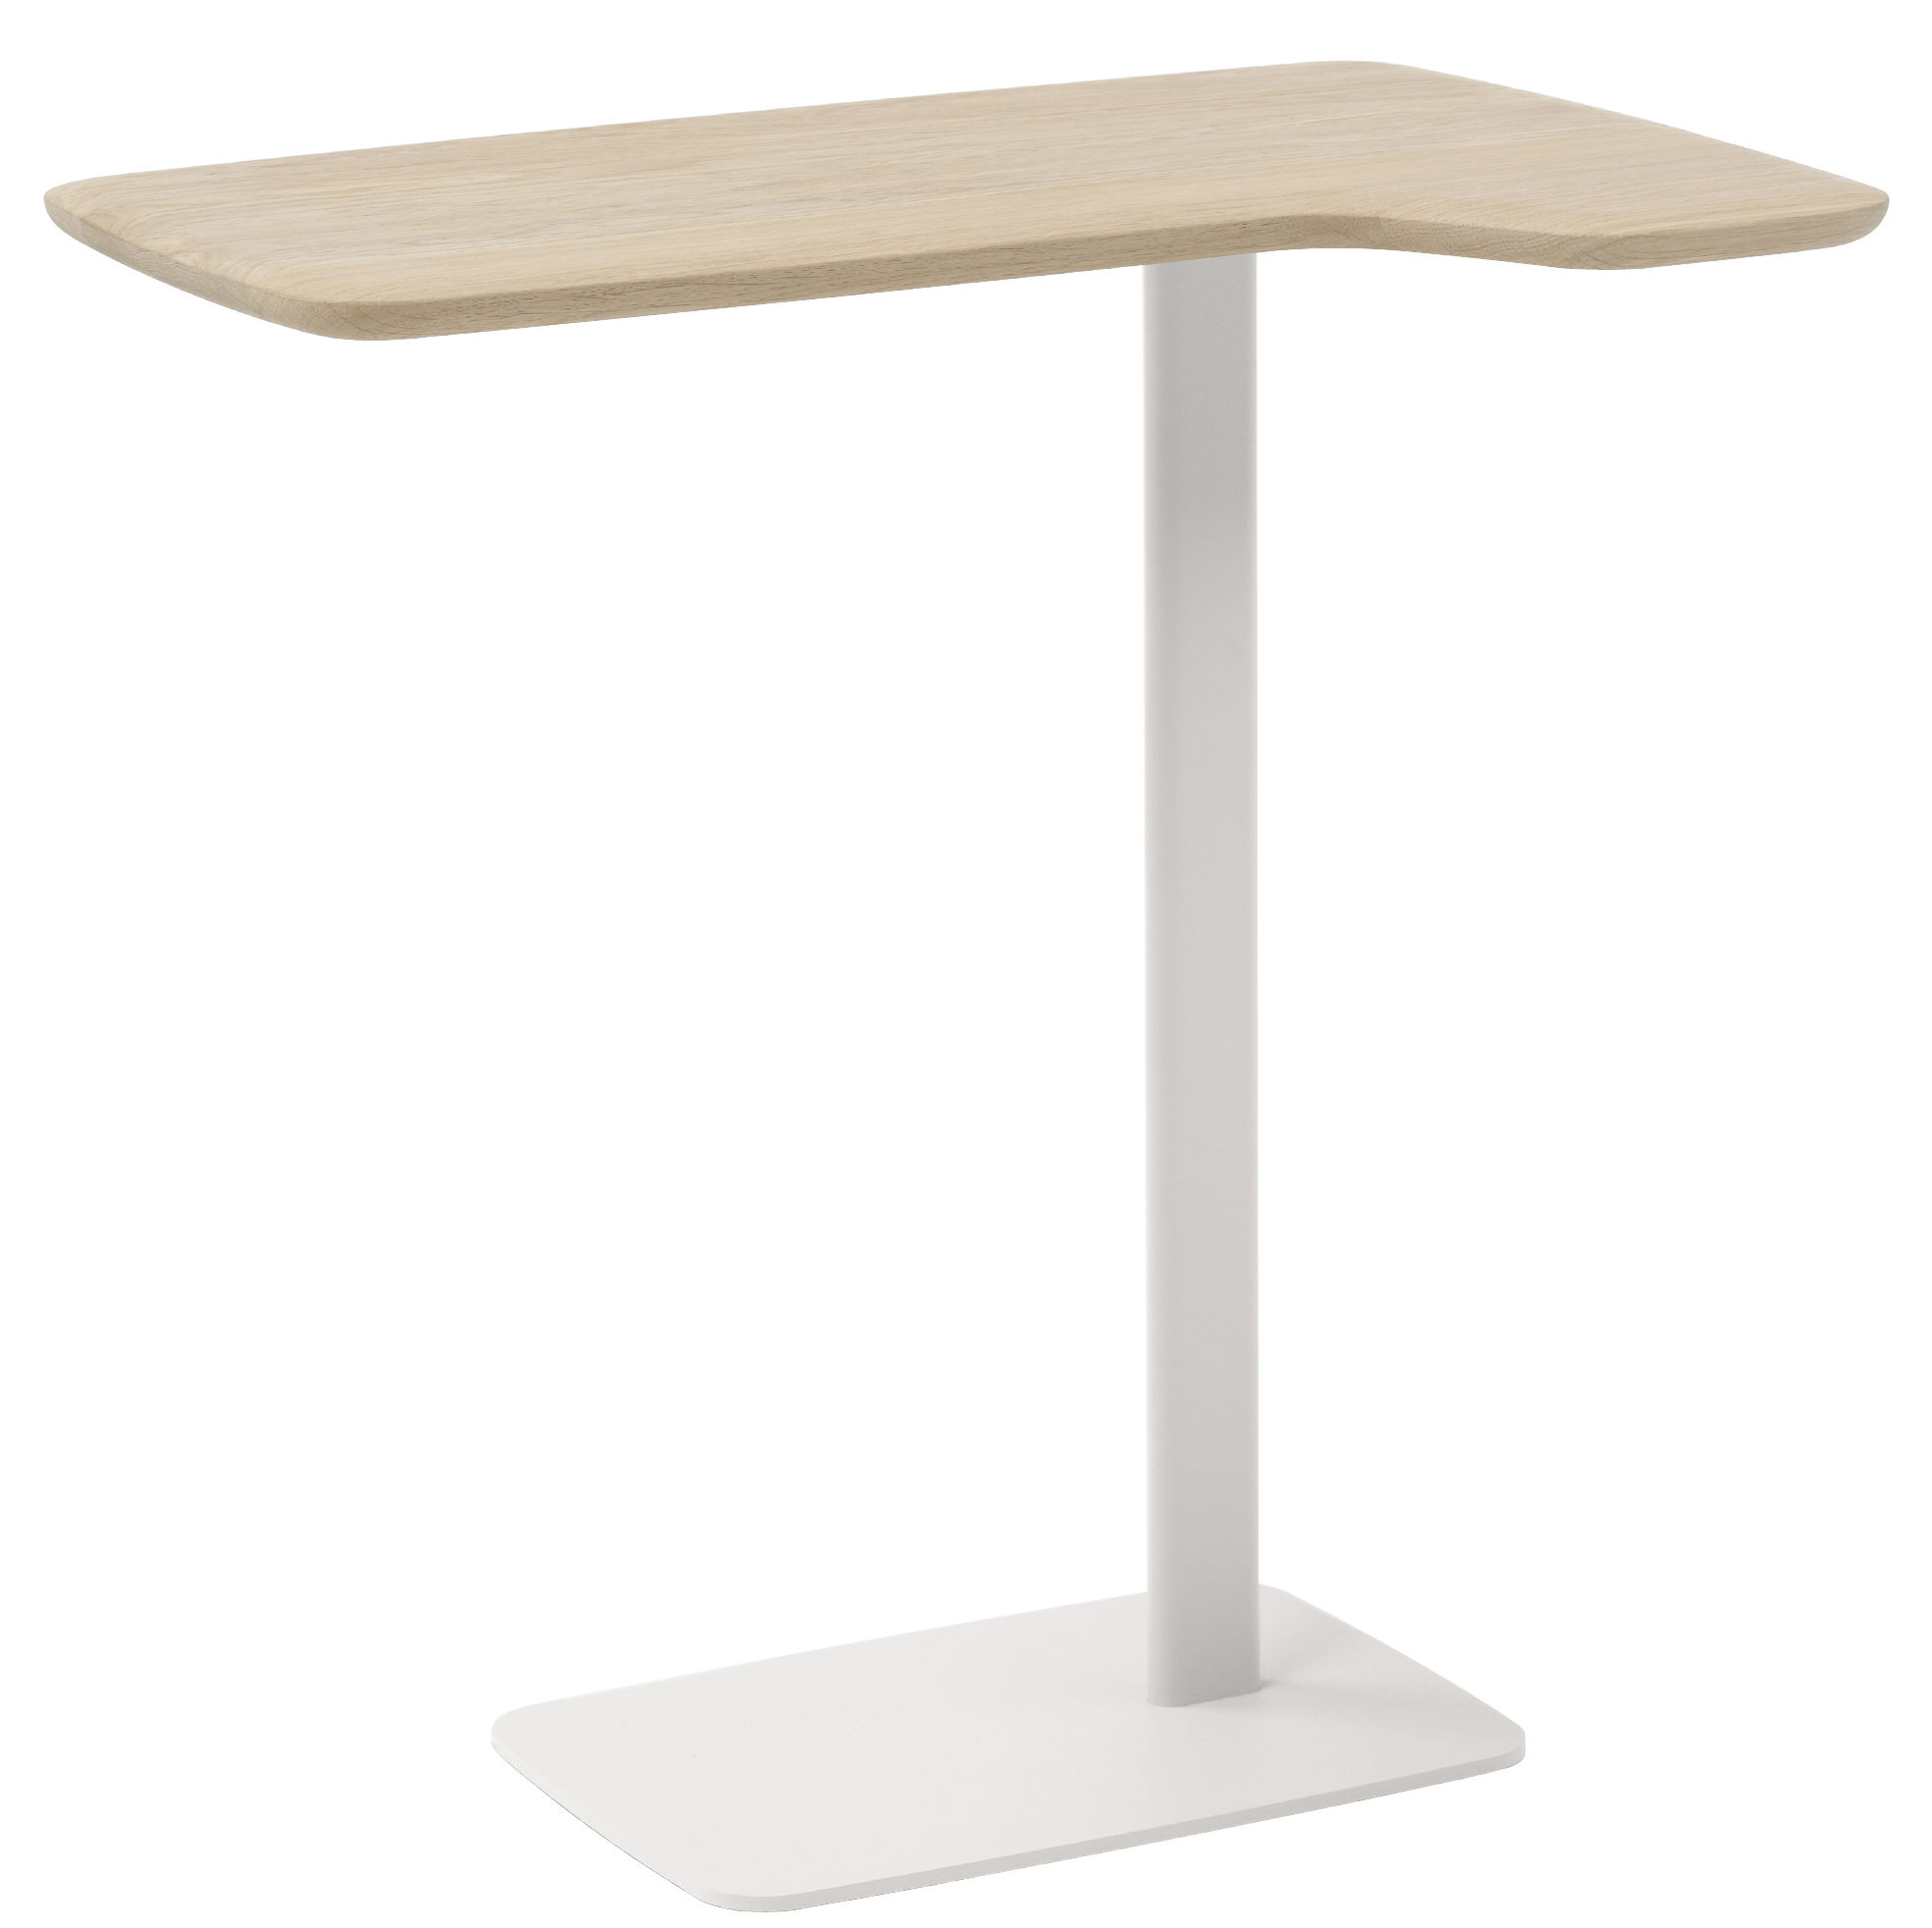 table d'appoint pour ordinateur portable